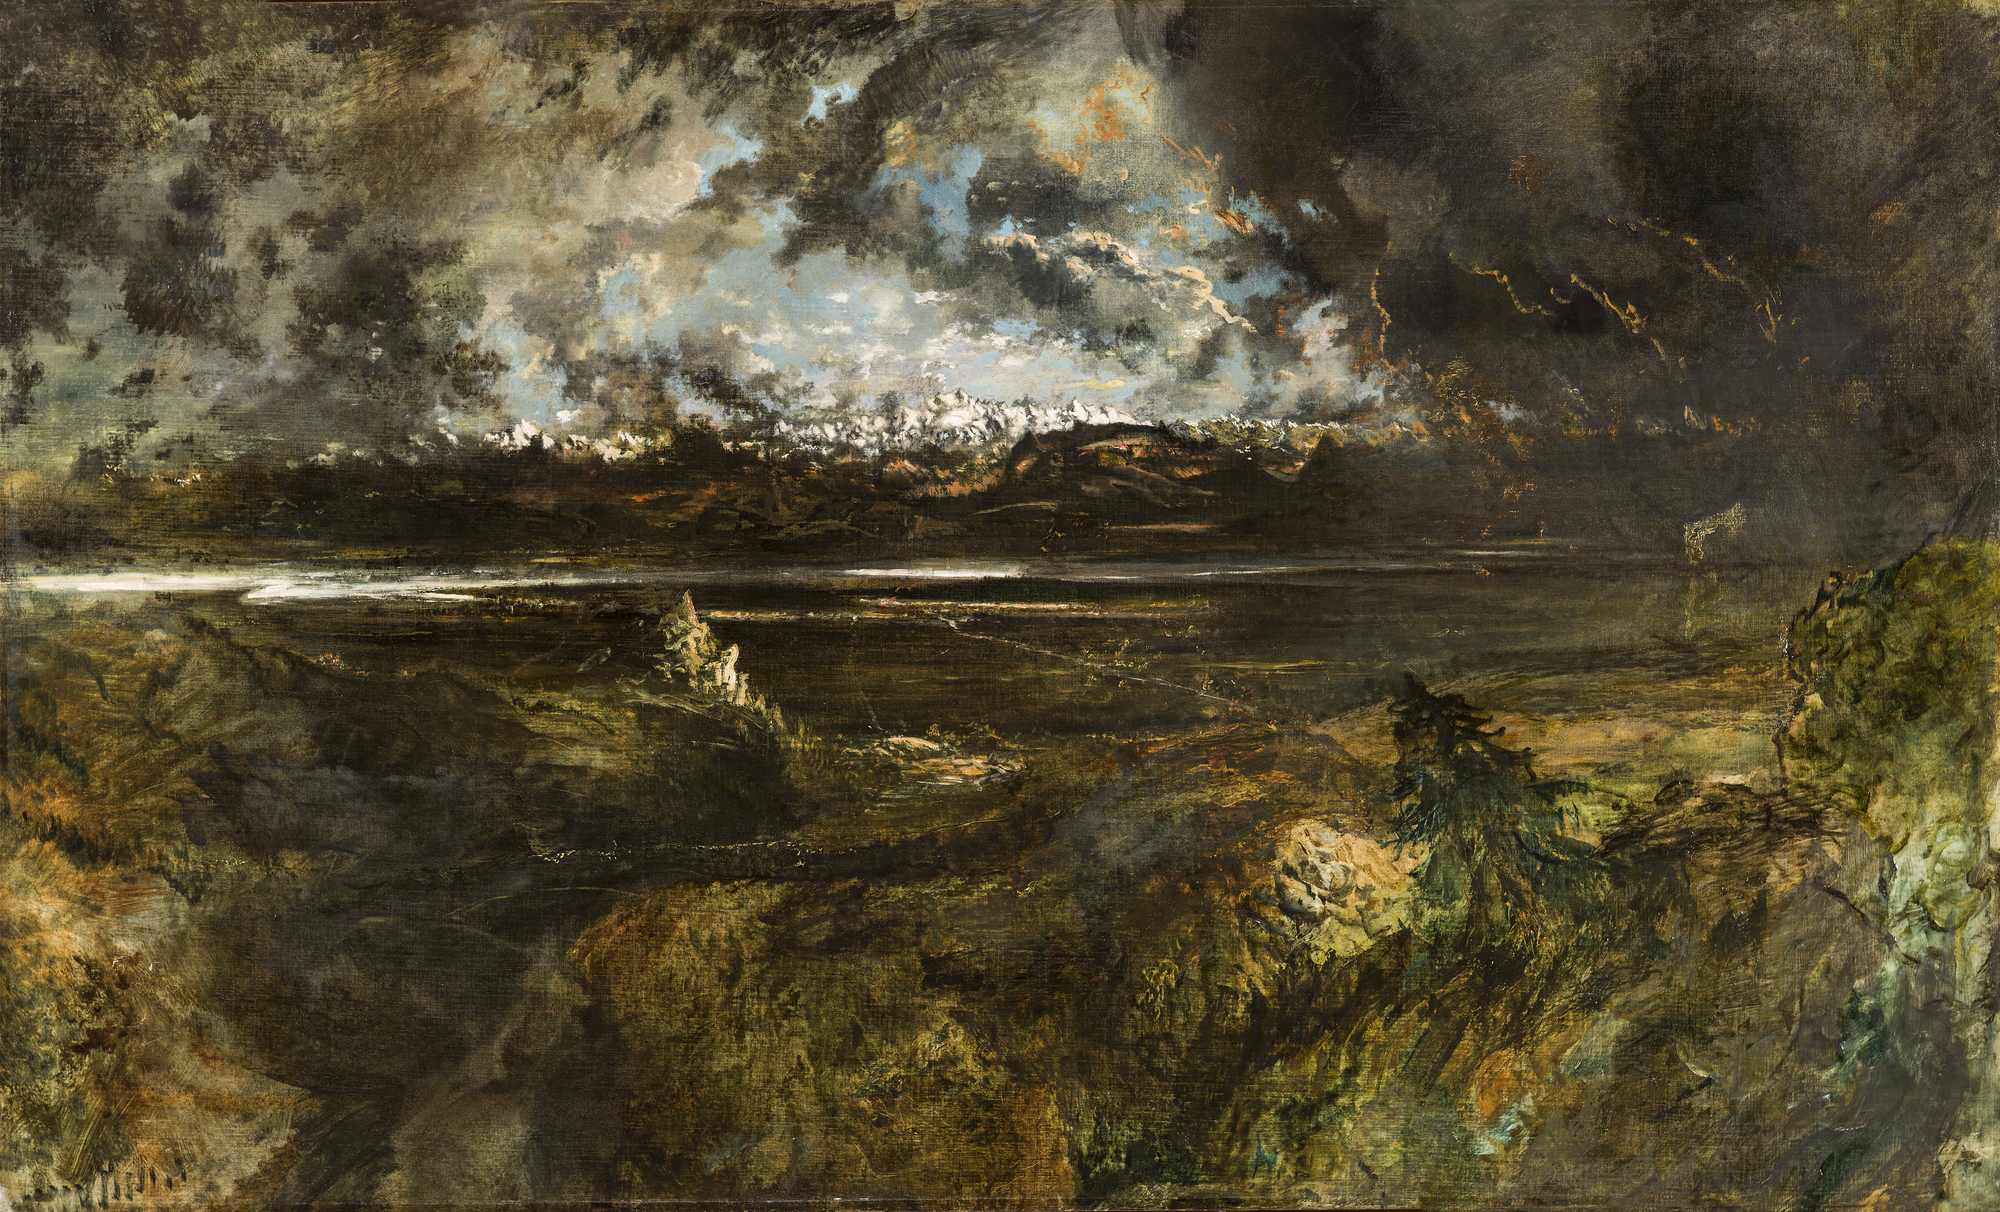 <em/>Mont Blanc Seen from La Faucille, Storm Effect, begun 1834, Théodore Rousseau. Oil on canvas